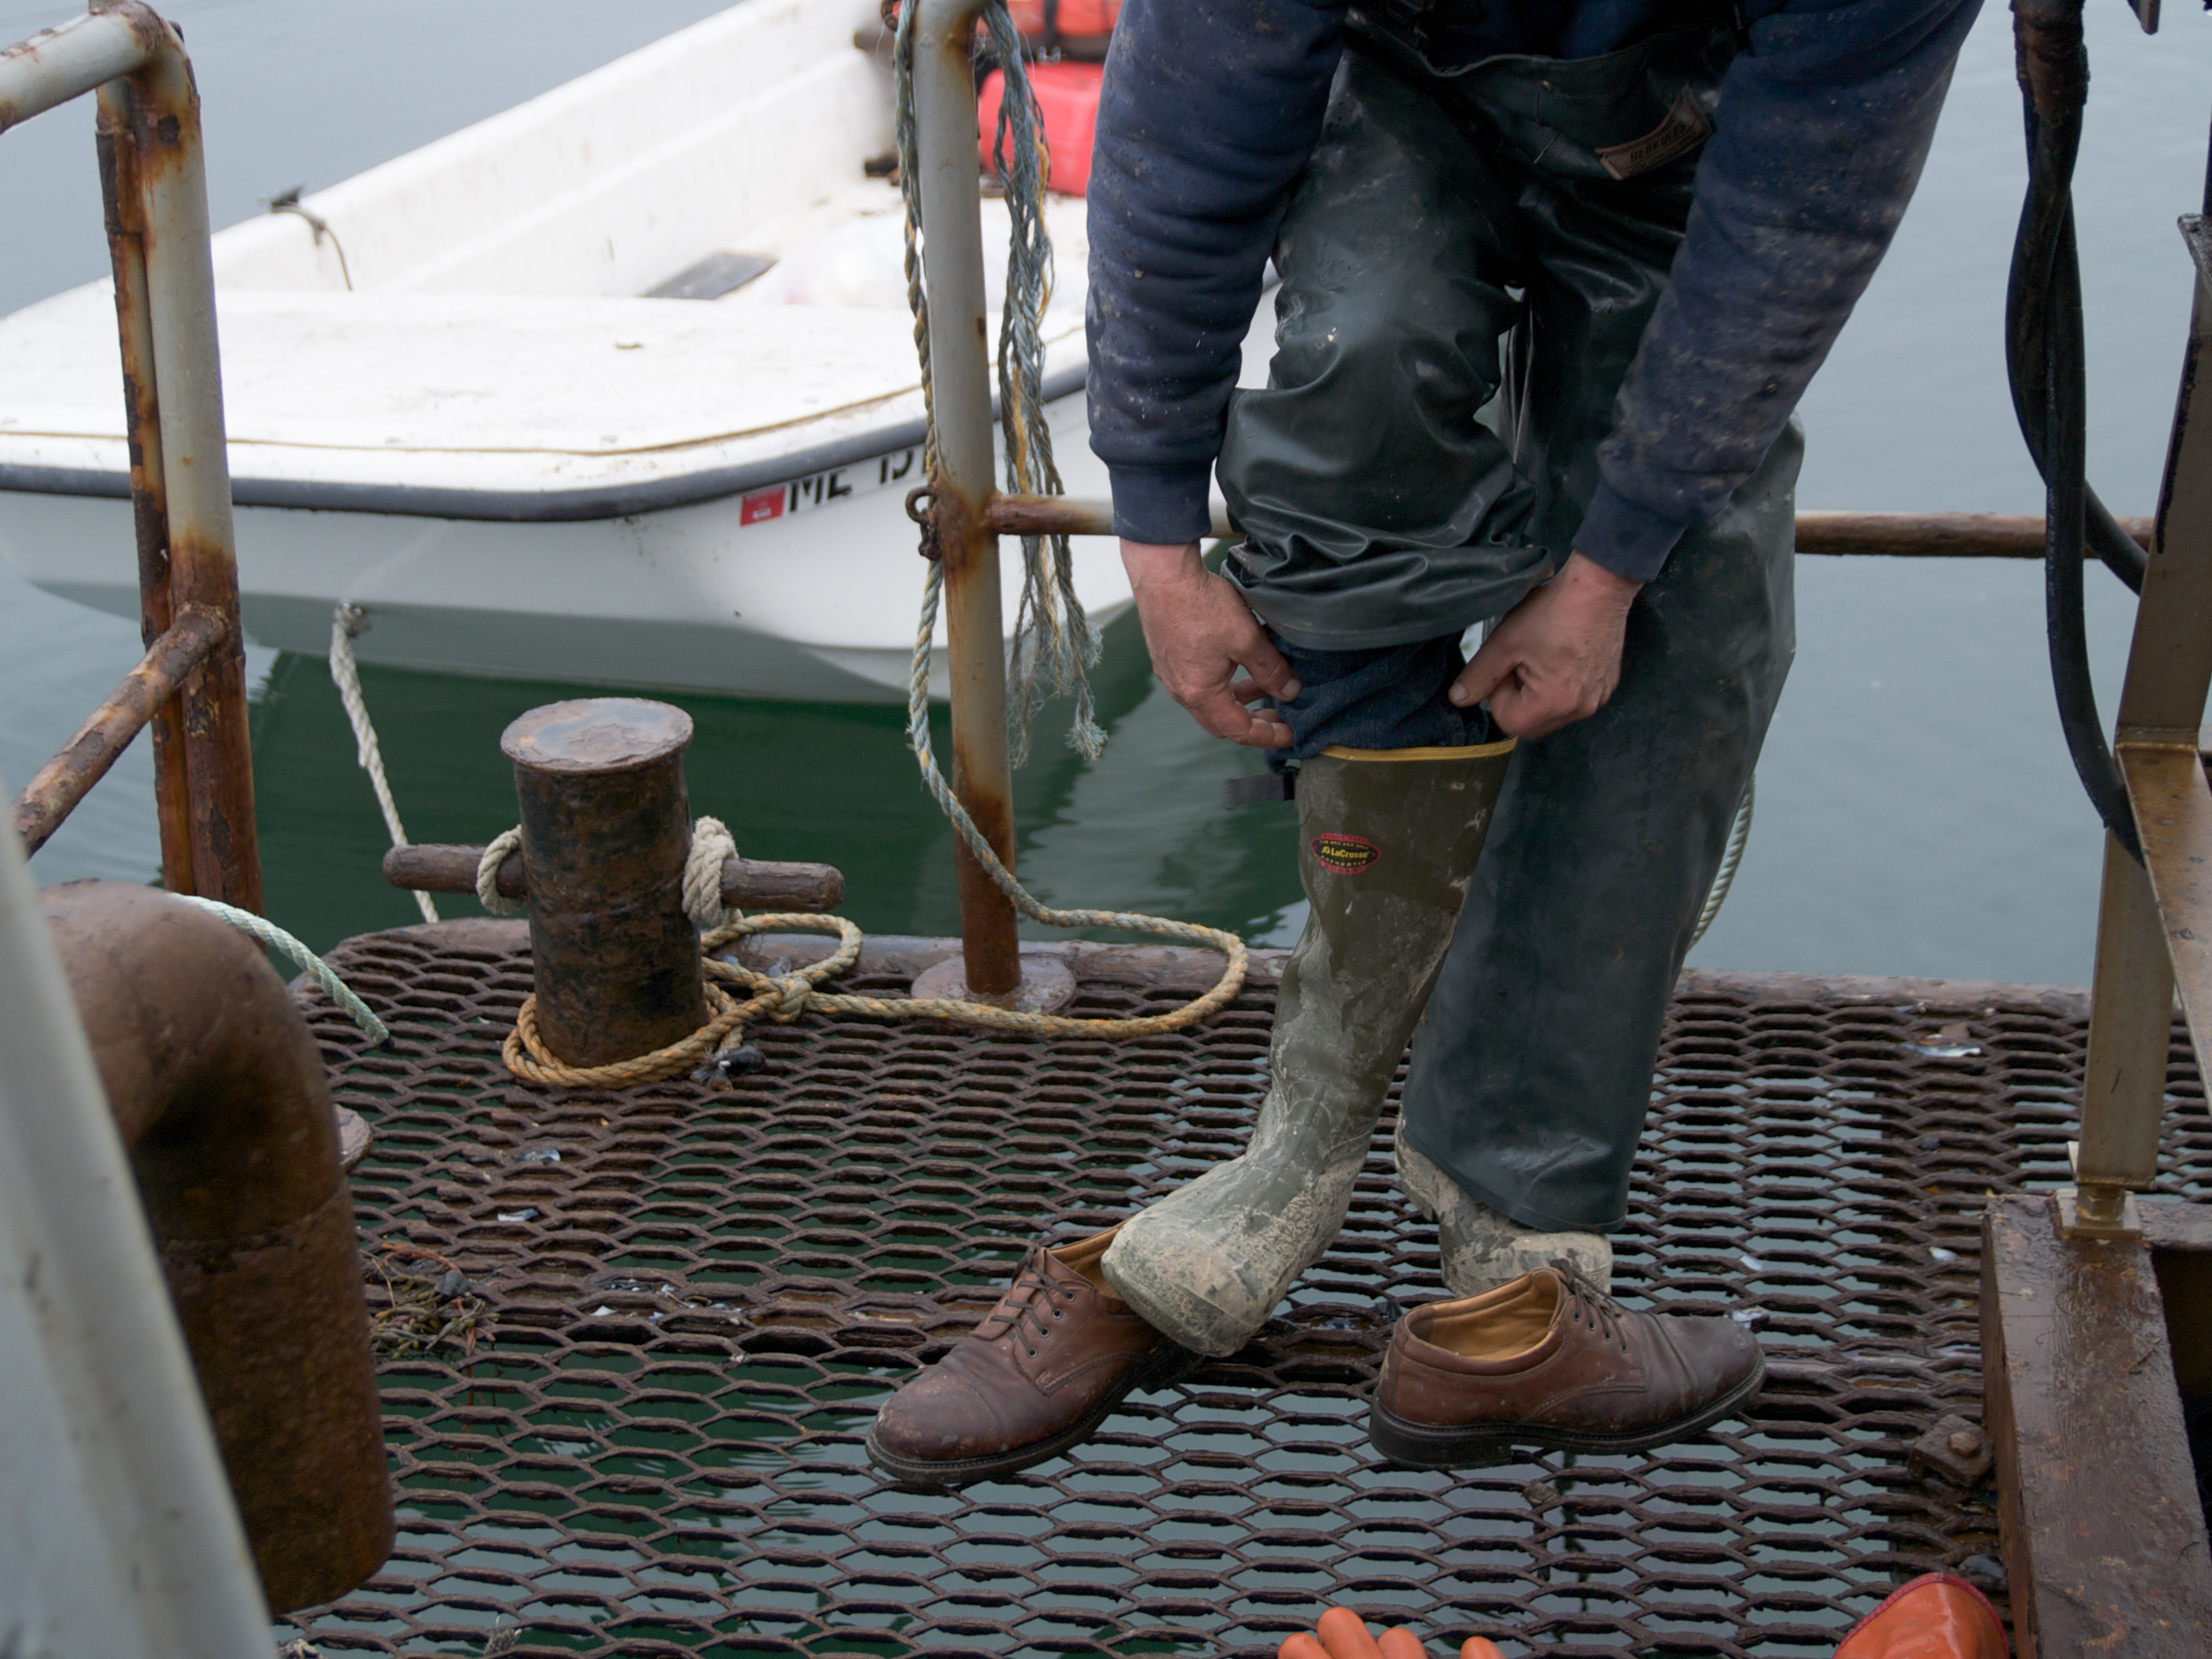 (04/04/09) Cater Newell pulls on a pair of boots. Rubber overalls and rubber boots are needed before getting to work on the barge. The job is a messy one and the crew have have to be prepared to work in all kinds of weather. In rough weather, waves wash over the deck of the boat, some- times spilling the mussels over the side and dur- ing the winter it's not unusual to spend the first hour of the day shovelling snow off the deck.